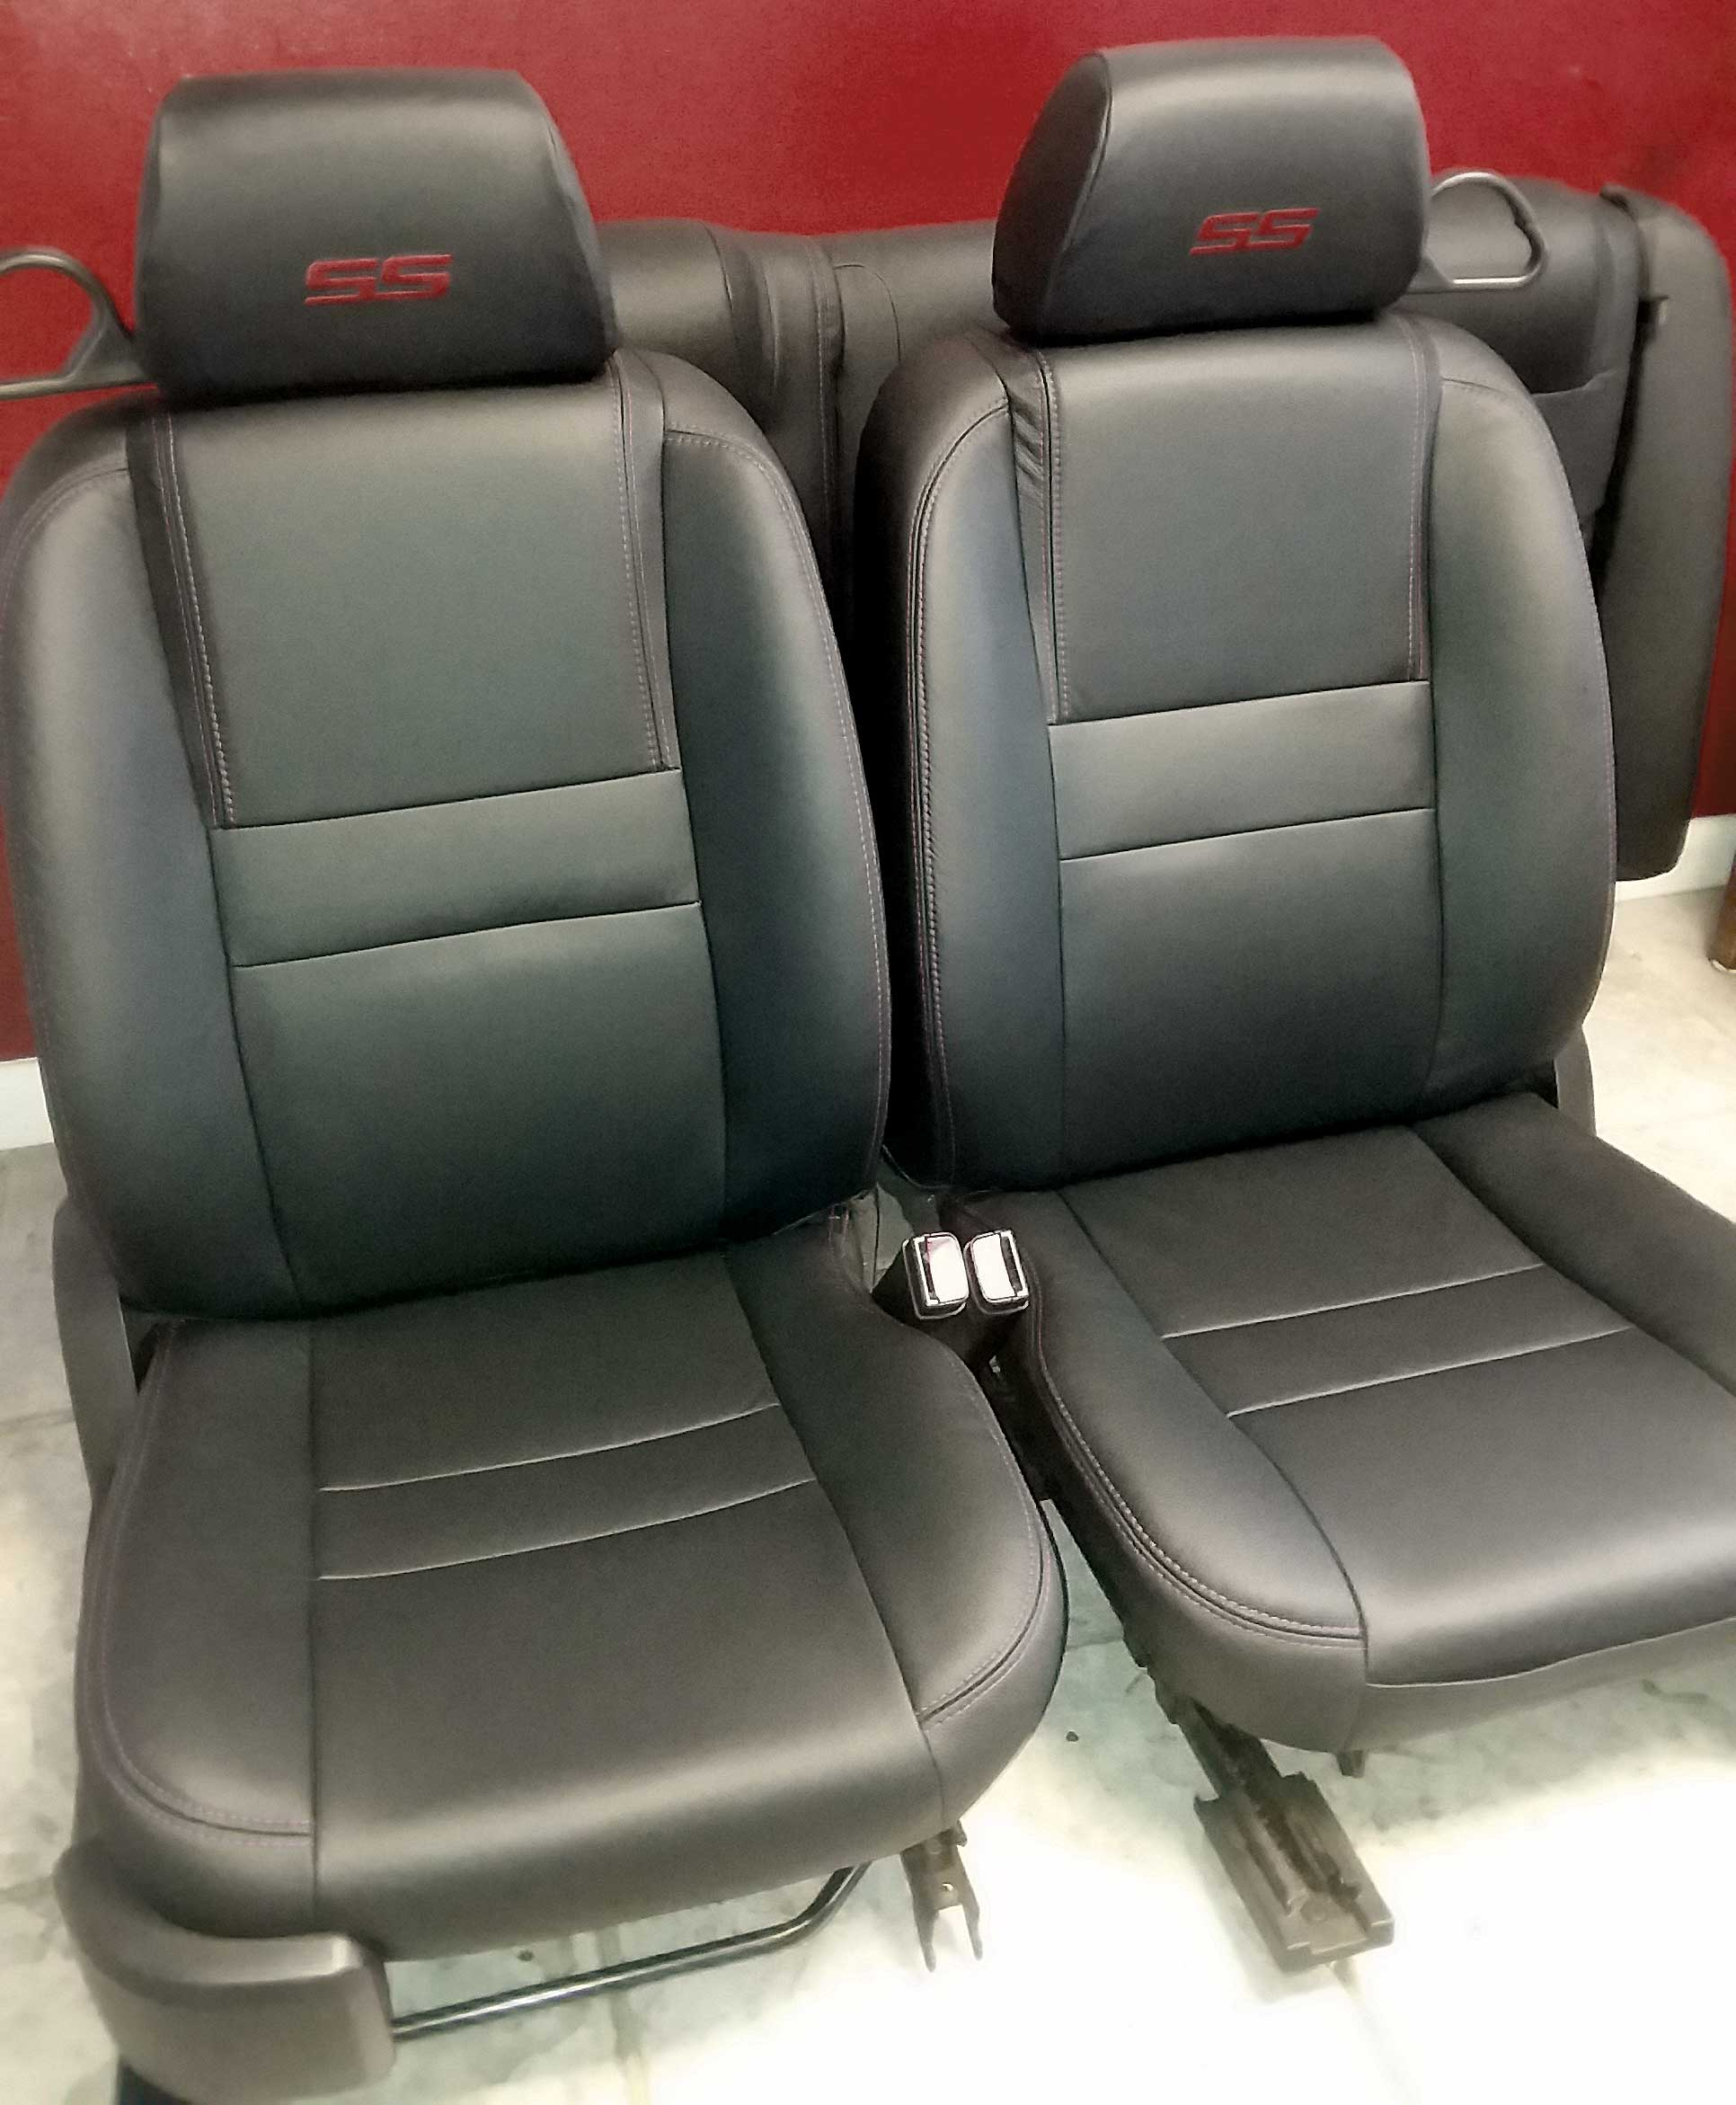 Leather Upholstery Repair >> J B Auto Upholstery Services Serving Polk County Florida